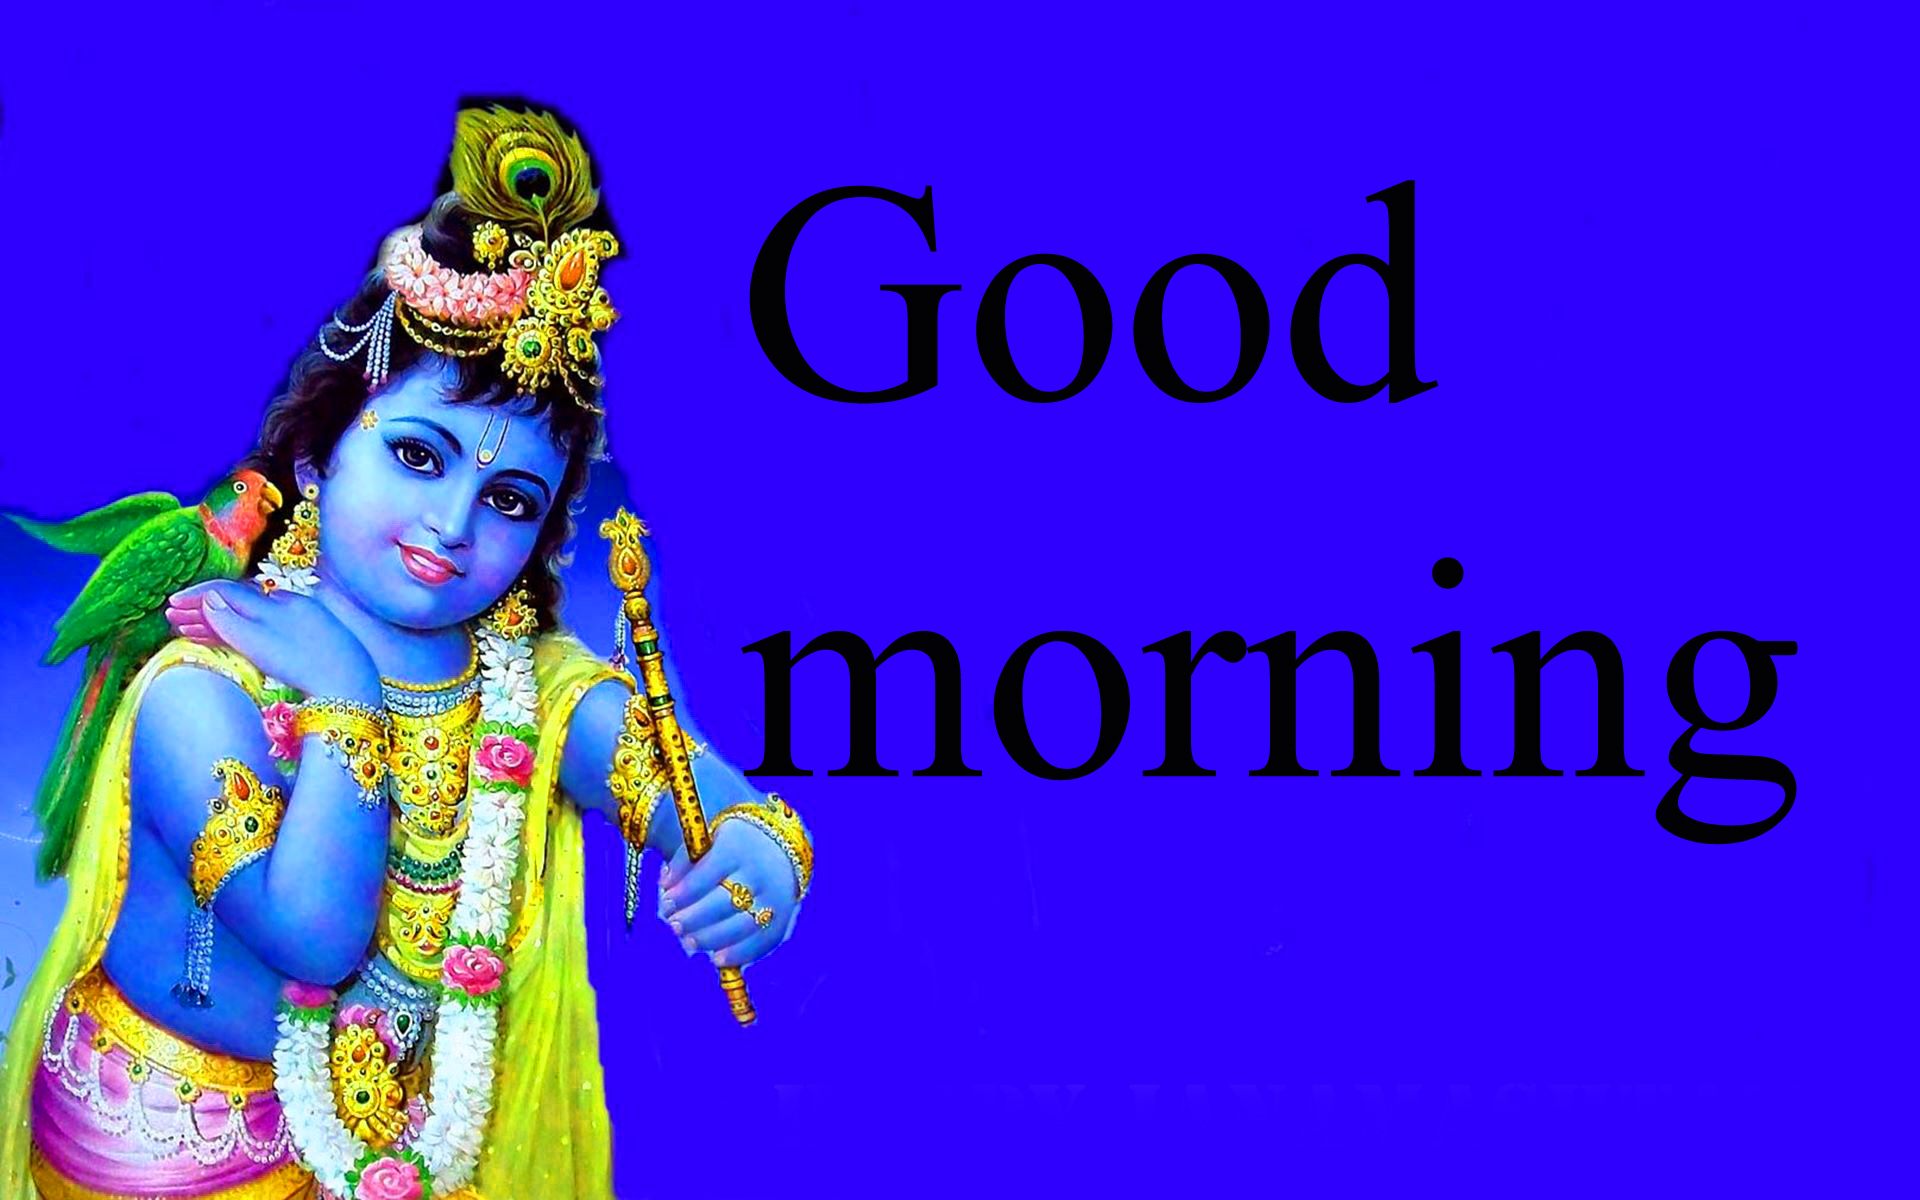 God Good Morning Photo Wallpaper Images Free Download HD